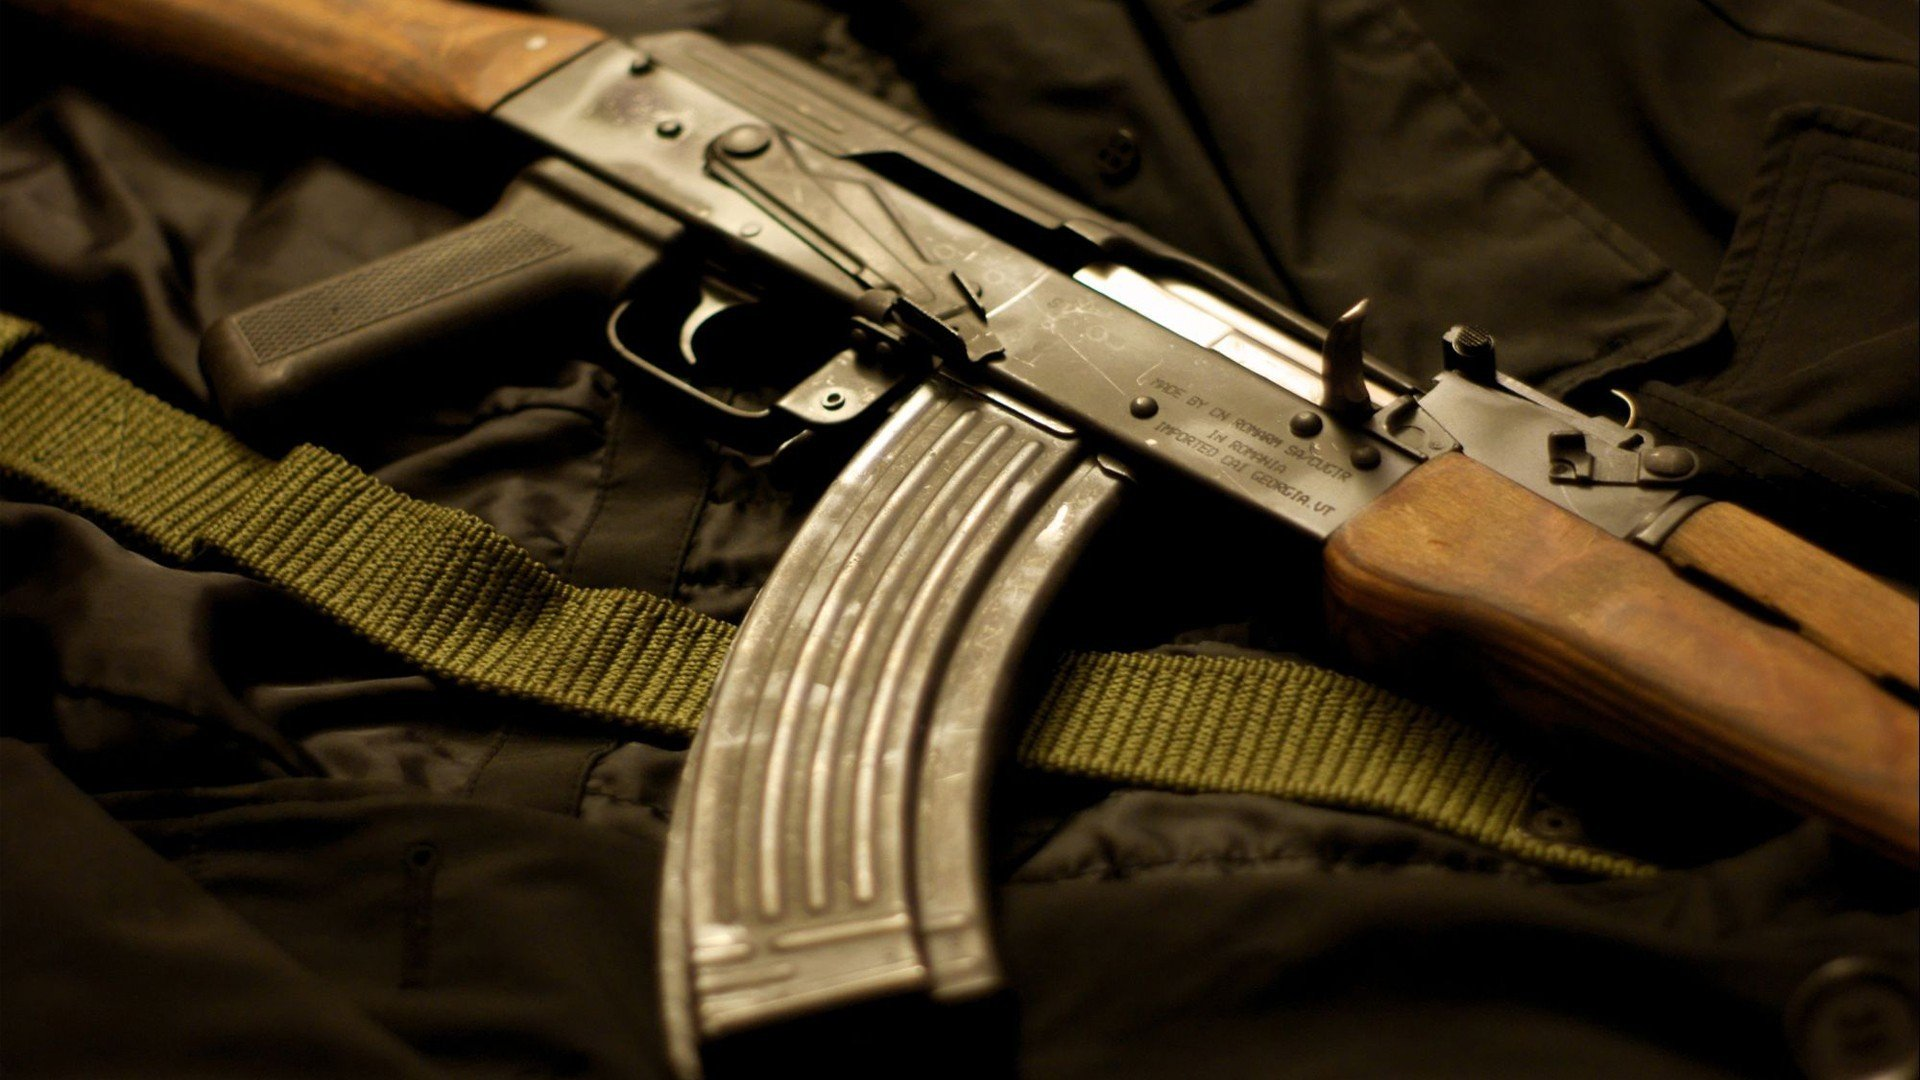 Ak 47 Wallpaper: Kalashnikov, Gun, AK 47, Weapon HD Wallpapers / Desktop